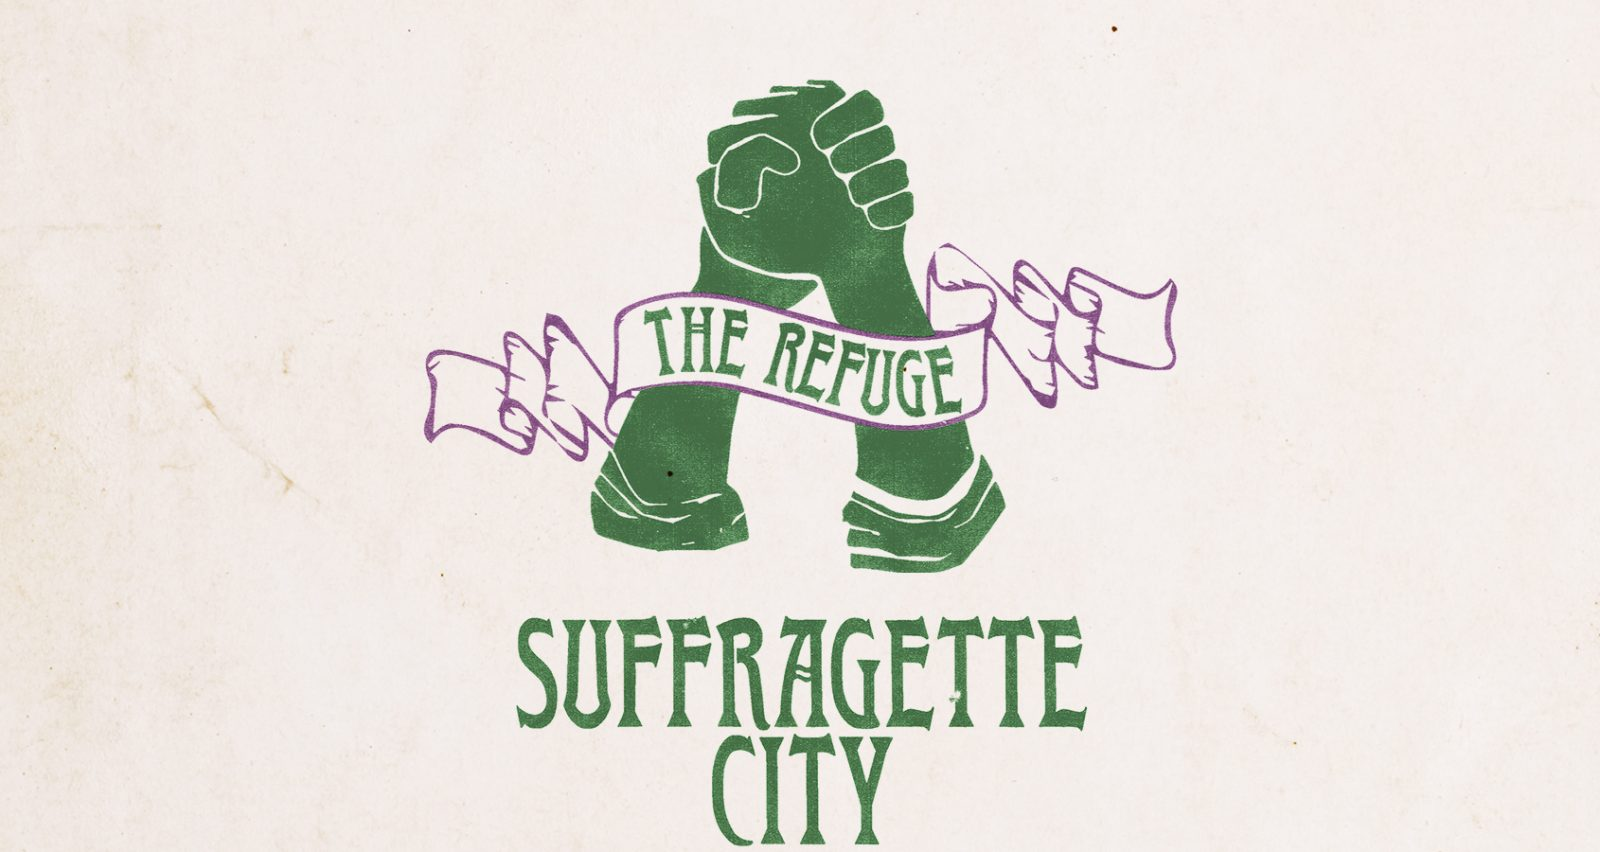 SUFFRAGETTE CITY: THE SEQUEL